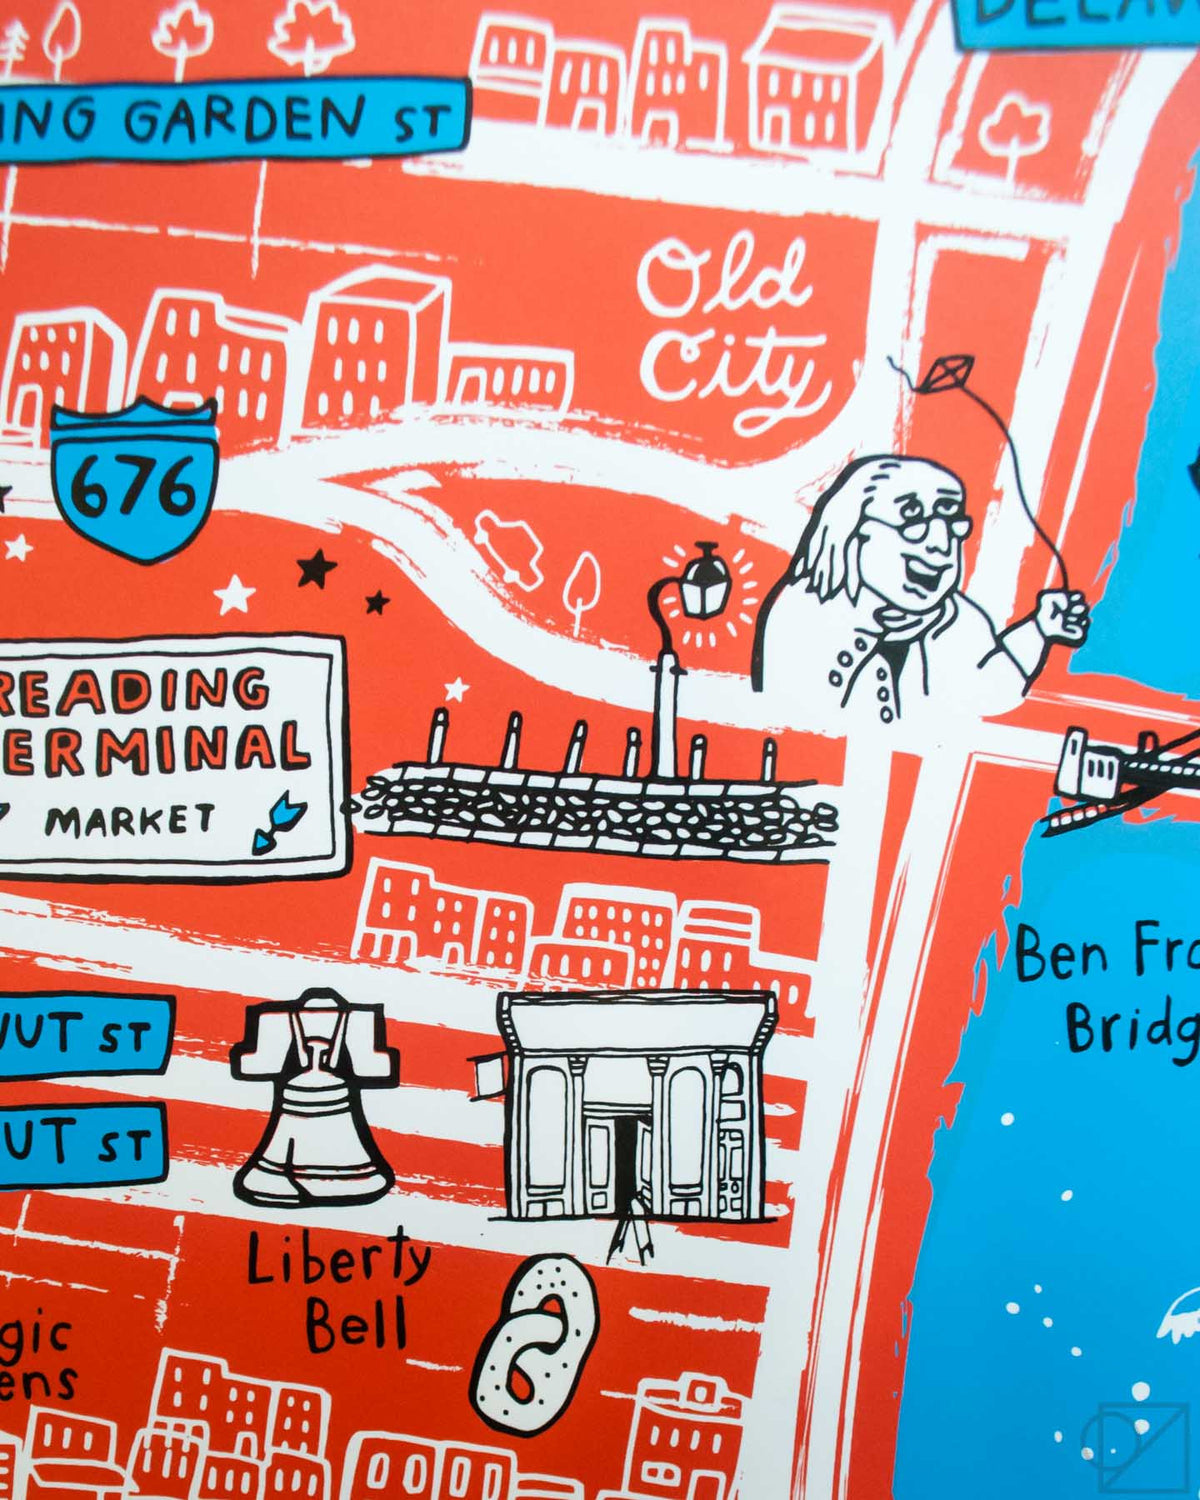 The Liberty Bell, Old City, and Ben Franklin on Brainstorm x Omoi Zakka Shop Philadelphia Map